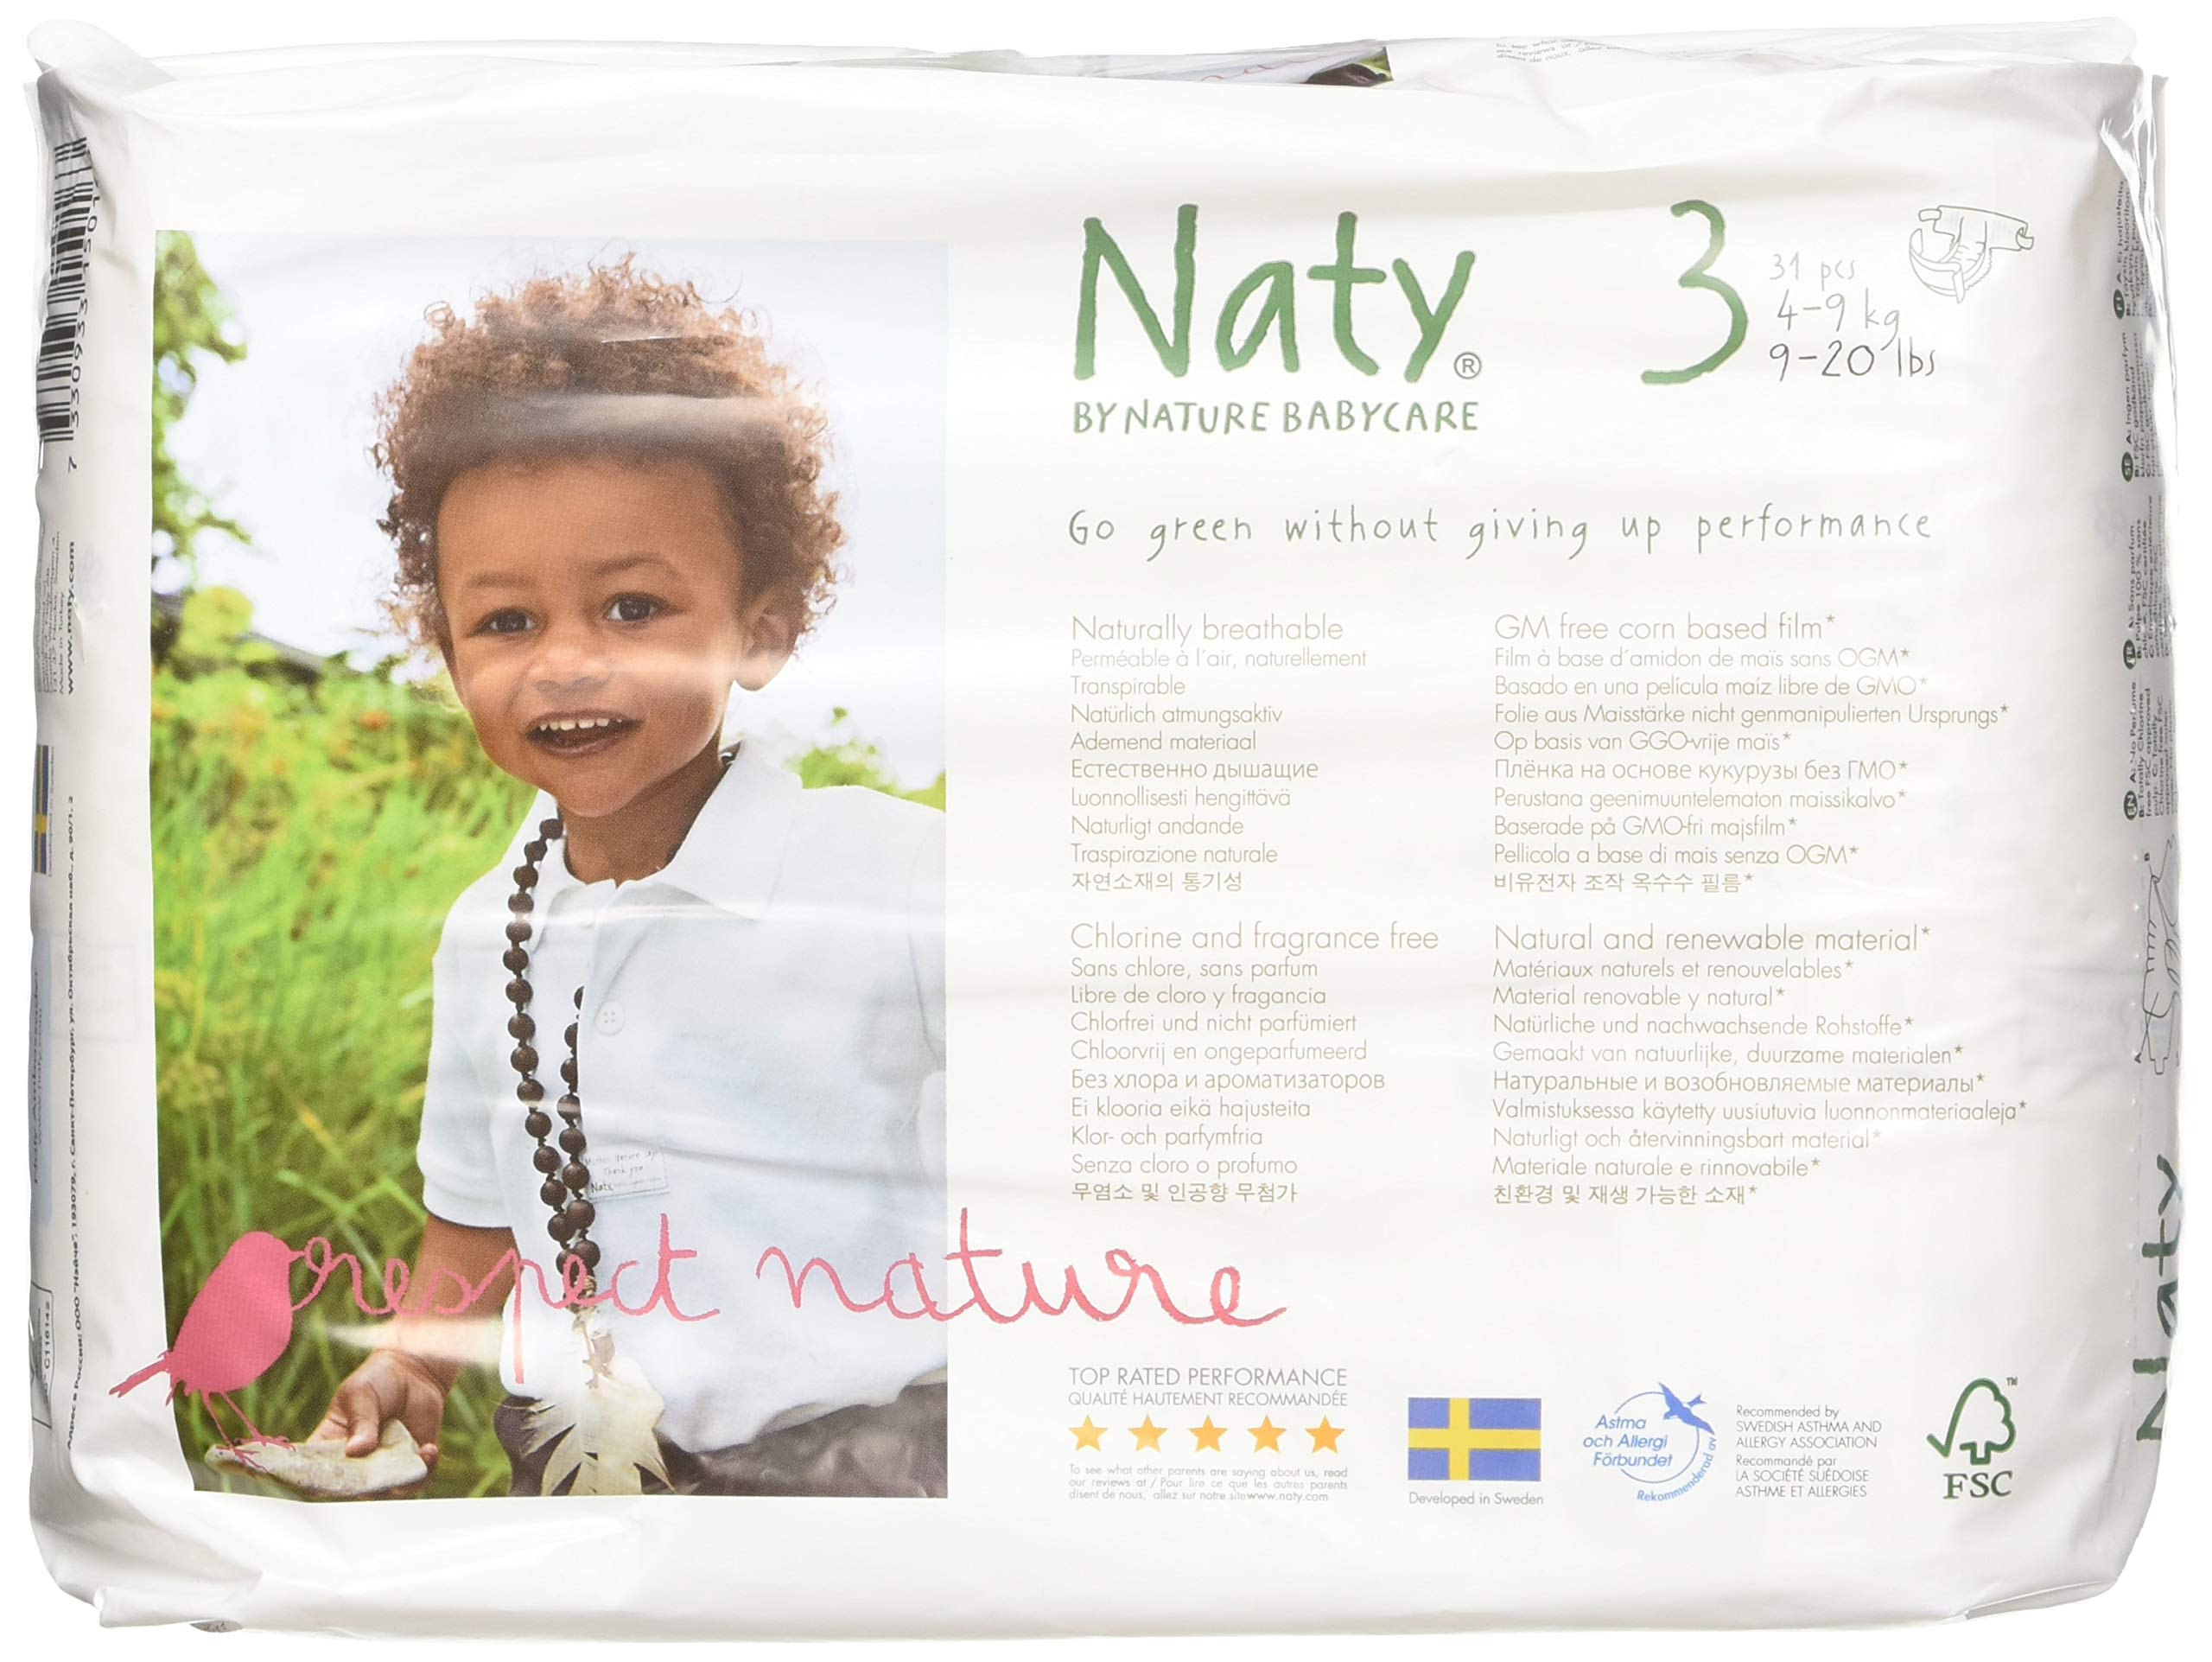 Naty by Nature Babycare Eco-Friendly Premium Disposable Diapers for Sensitive Skin, Size 3